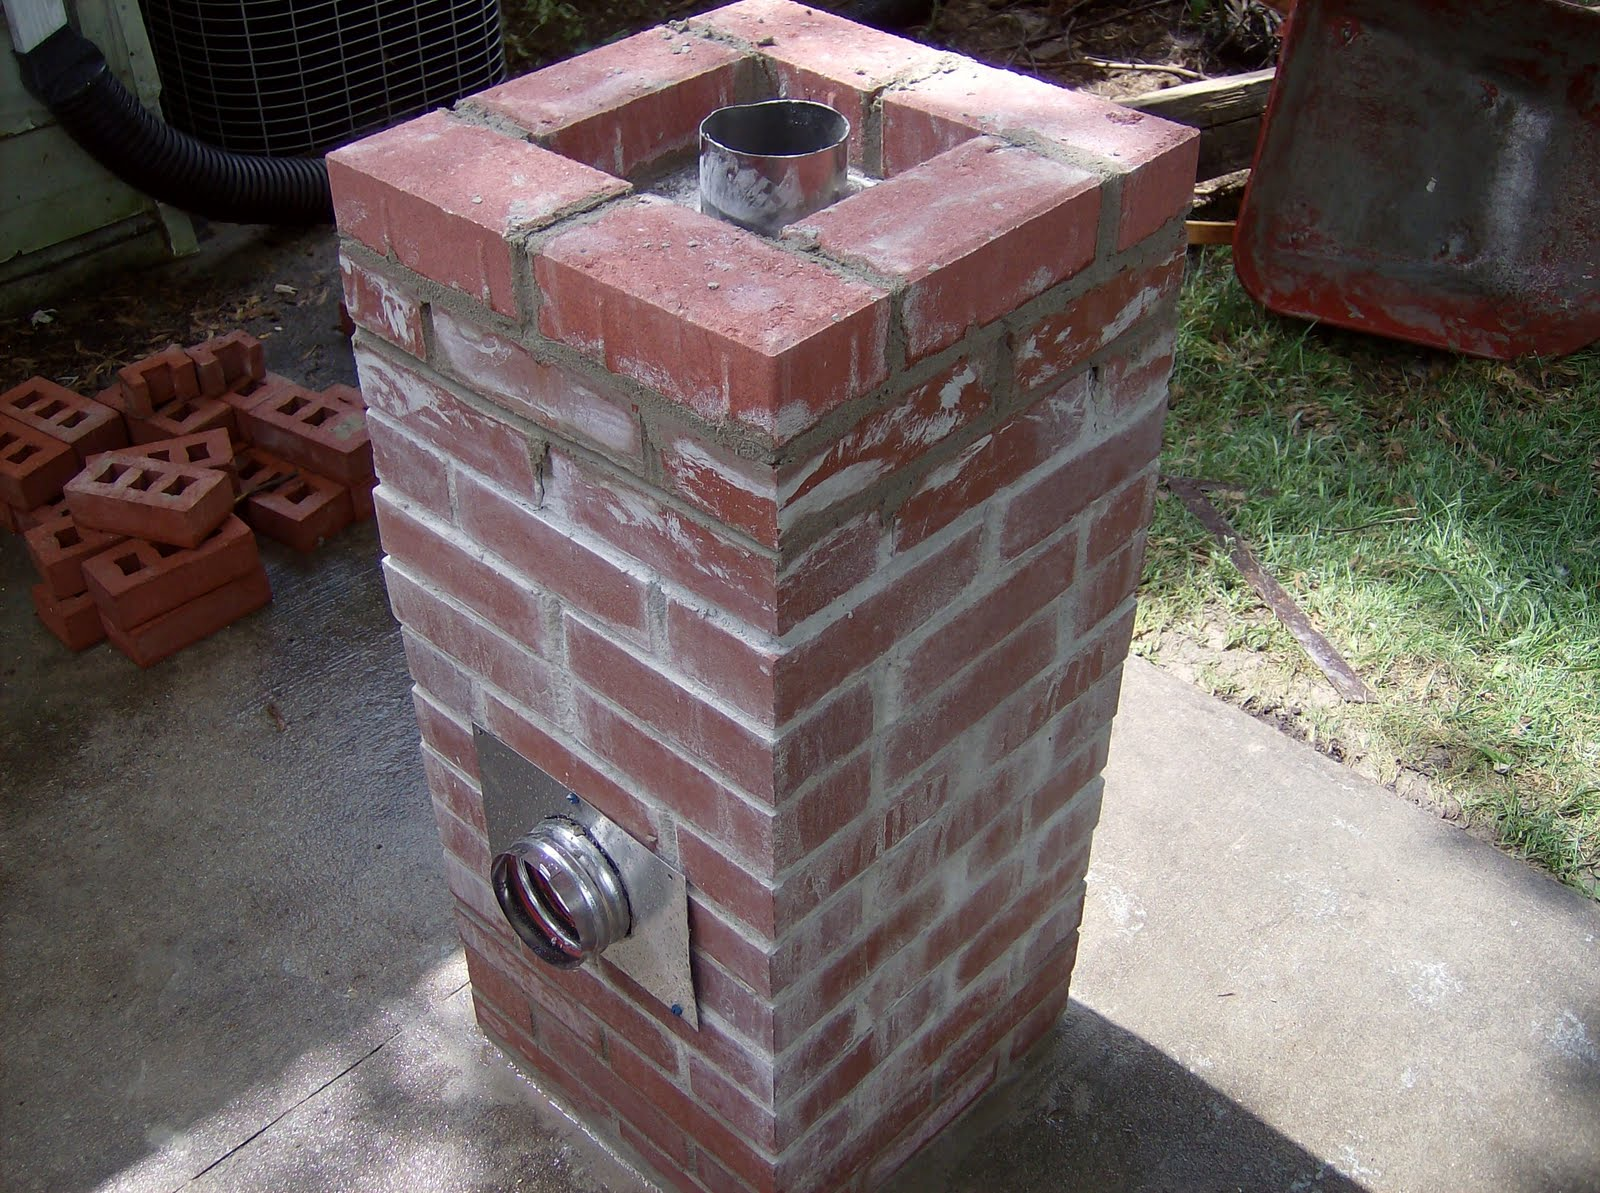 Newfound traditions rocket stove for beginners for How to make a rocket stove with bricks